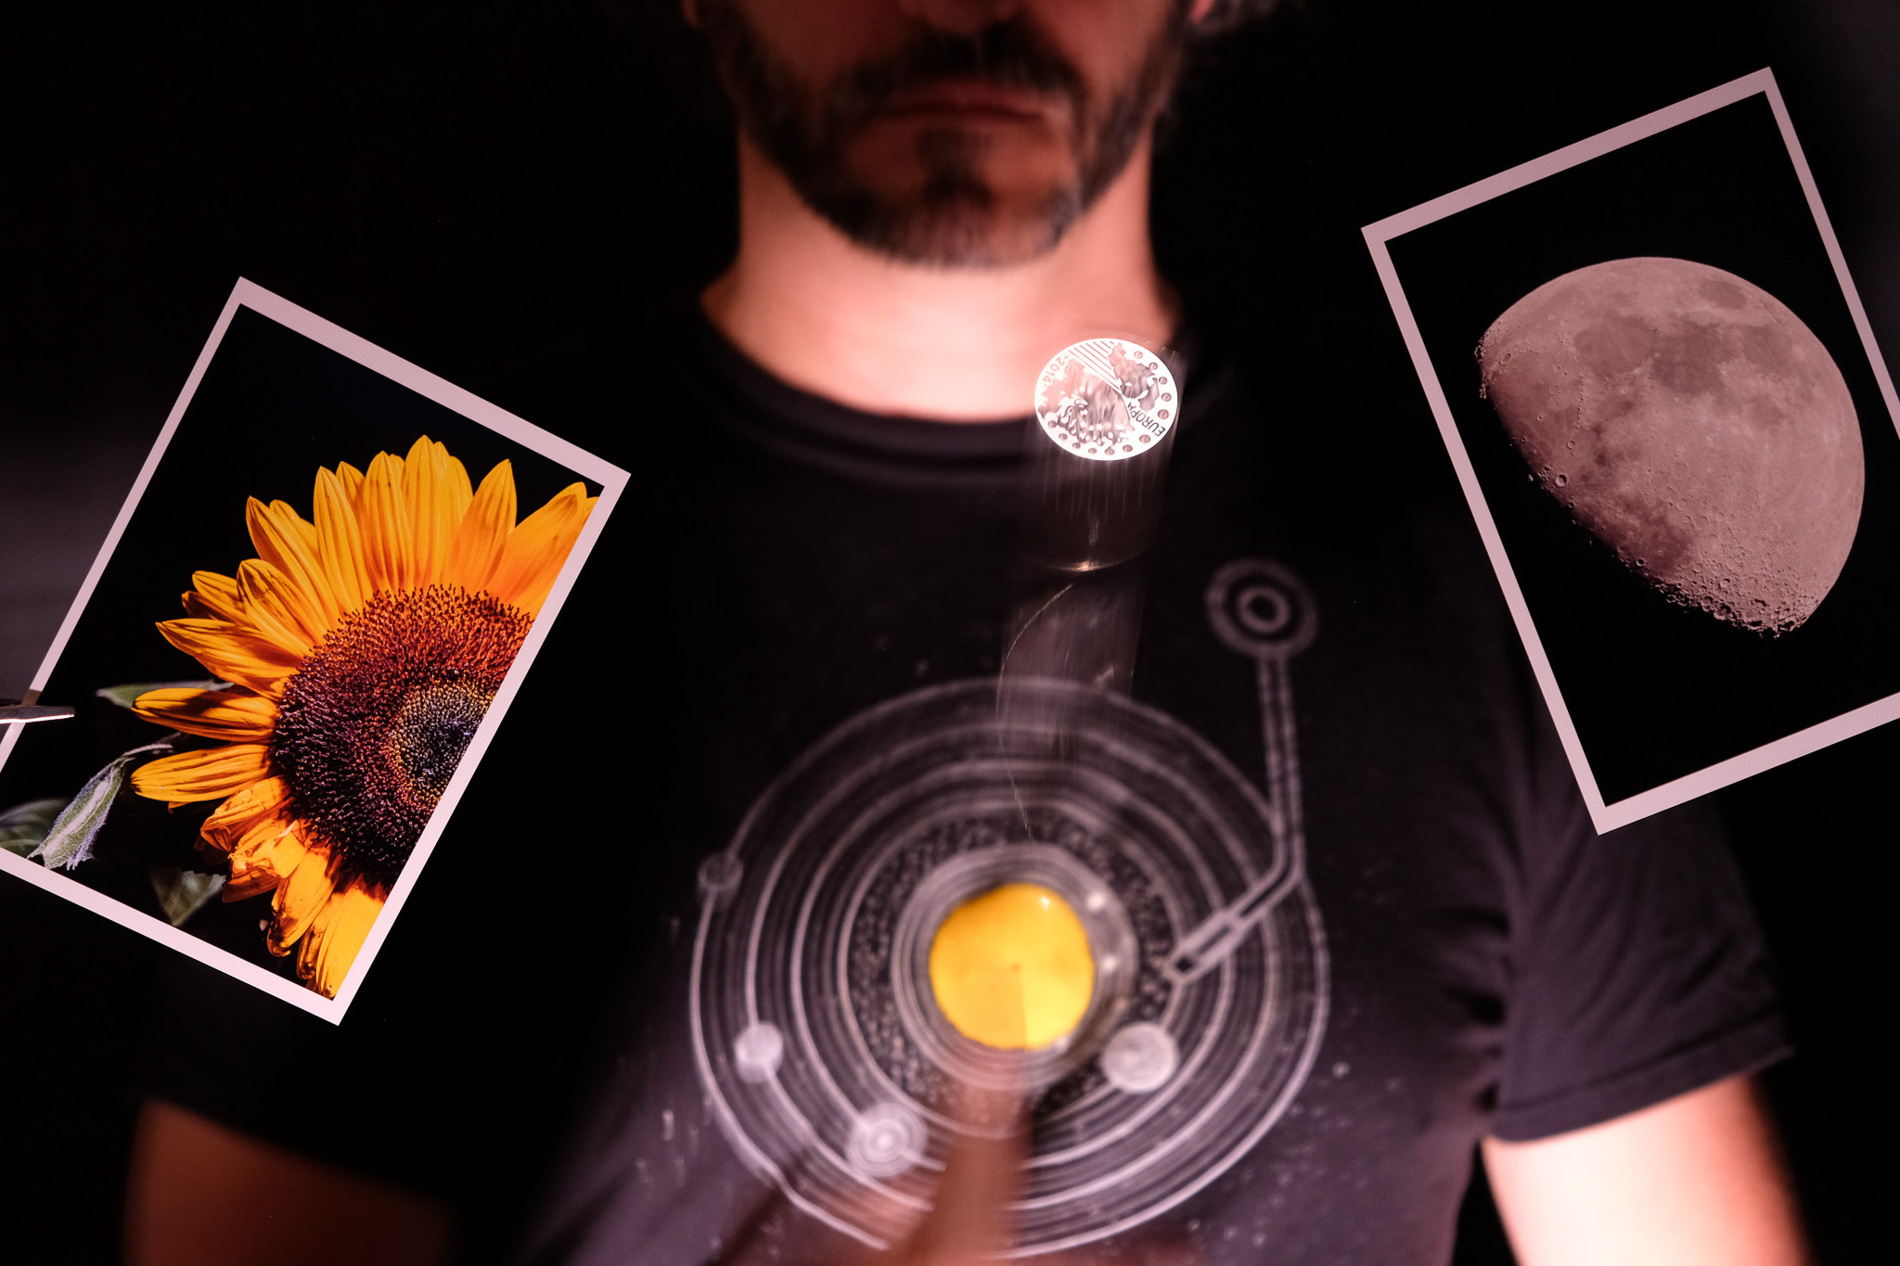 Man wearing tshirt with solar system, holding photos of sunflower and moon, photography by Maayan Windmuller